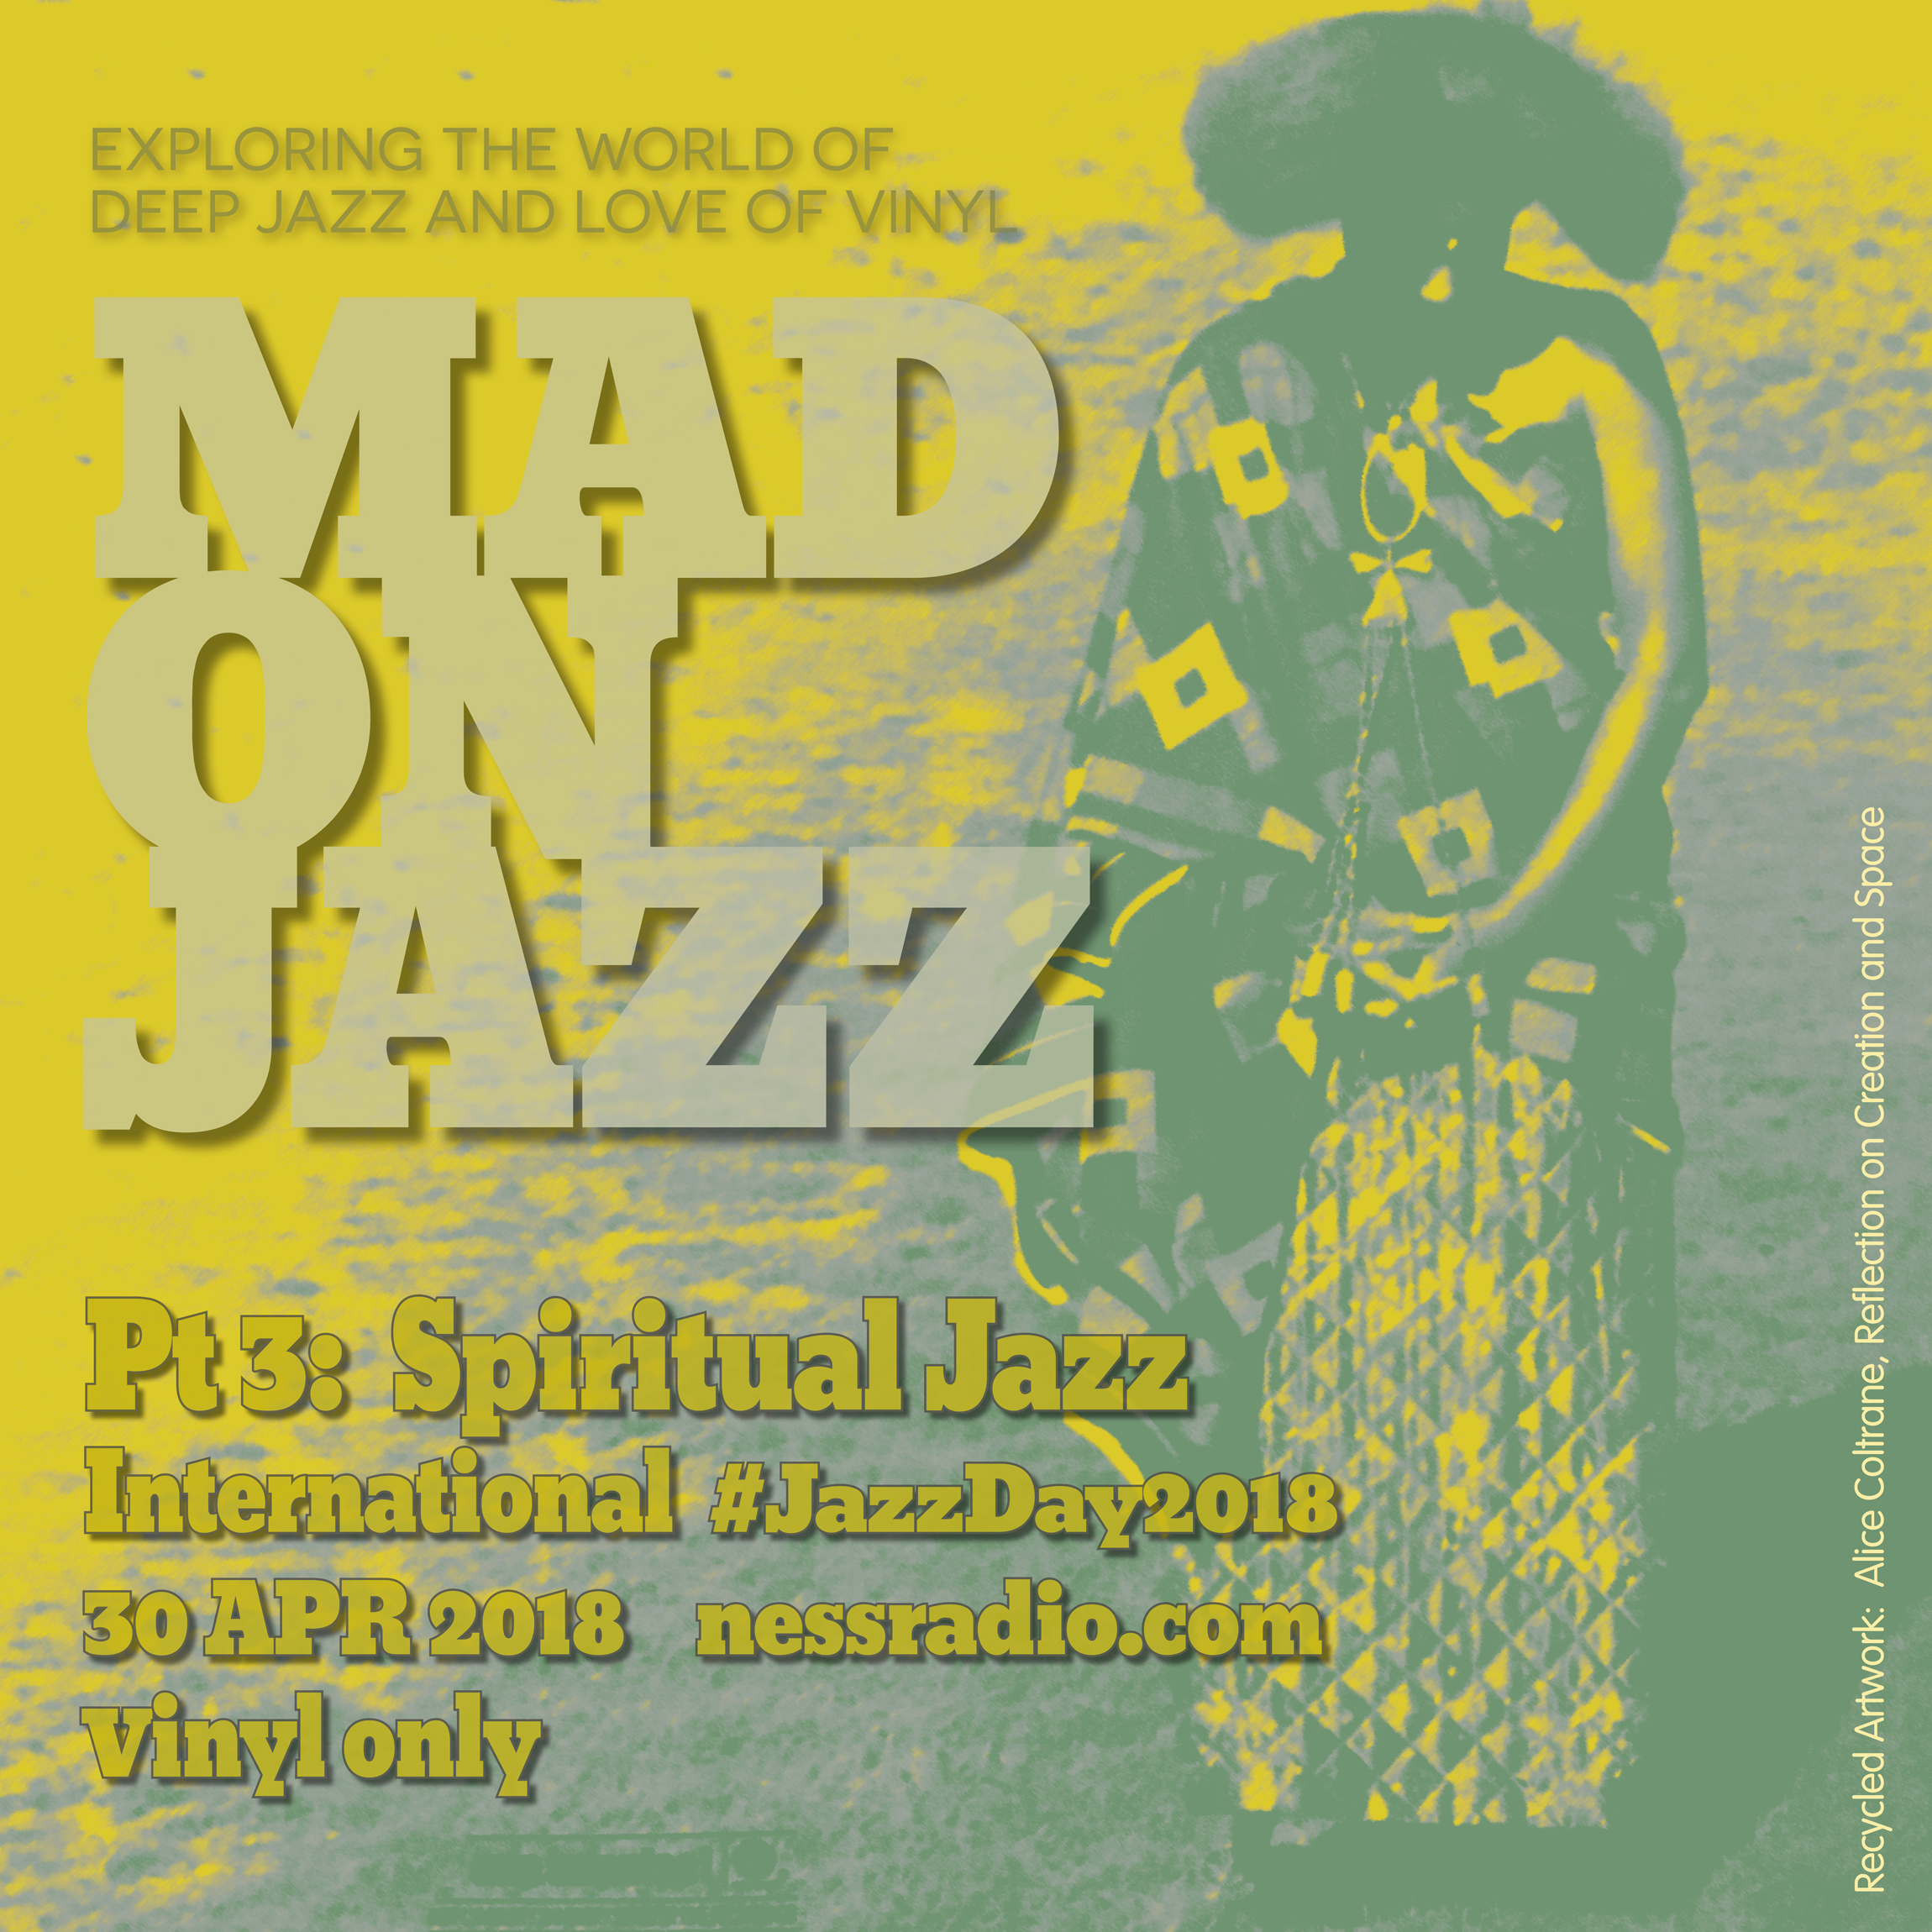 MADONJAZZ International Jazz Day special Pt 3: Spiritual Jazz